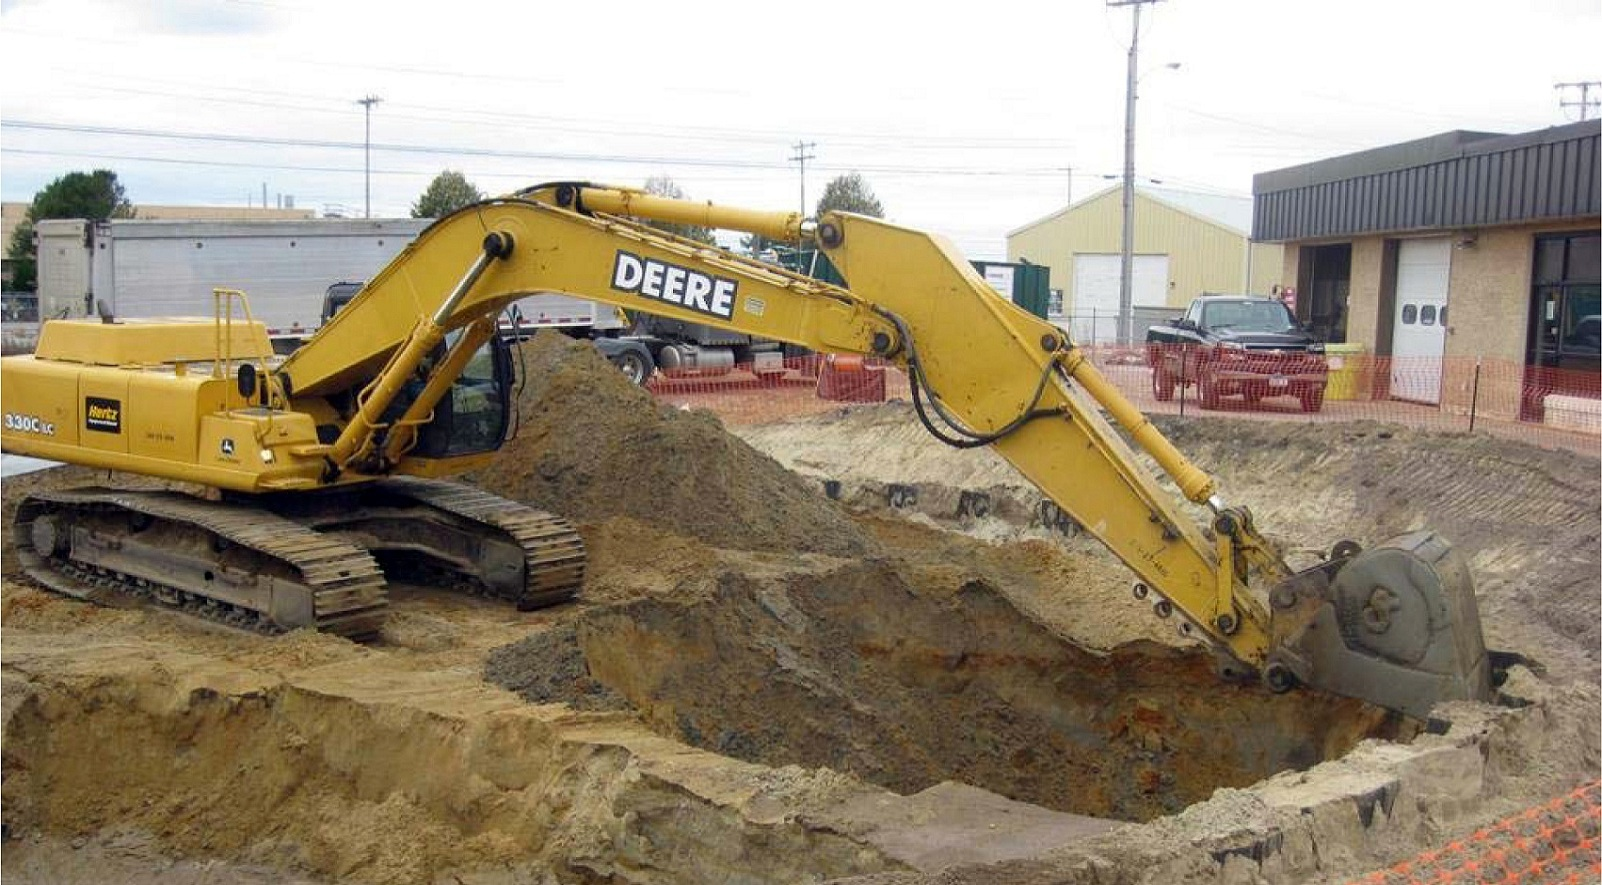 How to Fix-Clean Contaminated Soil